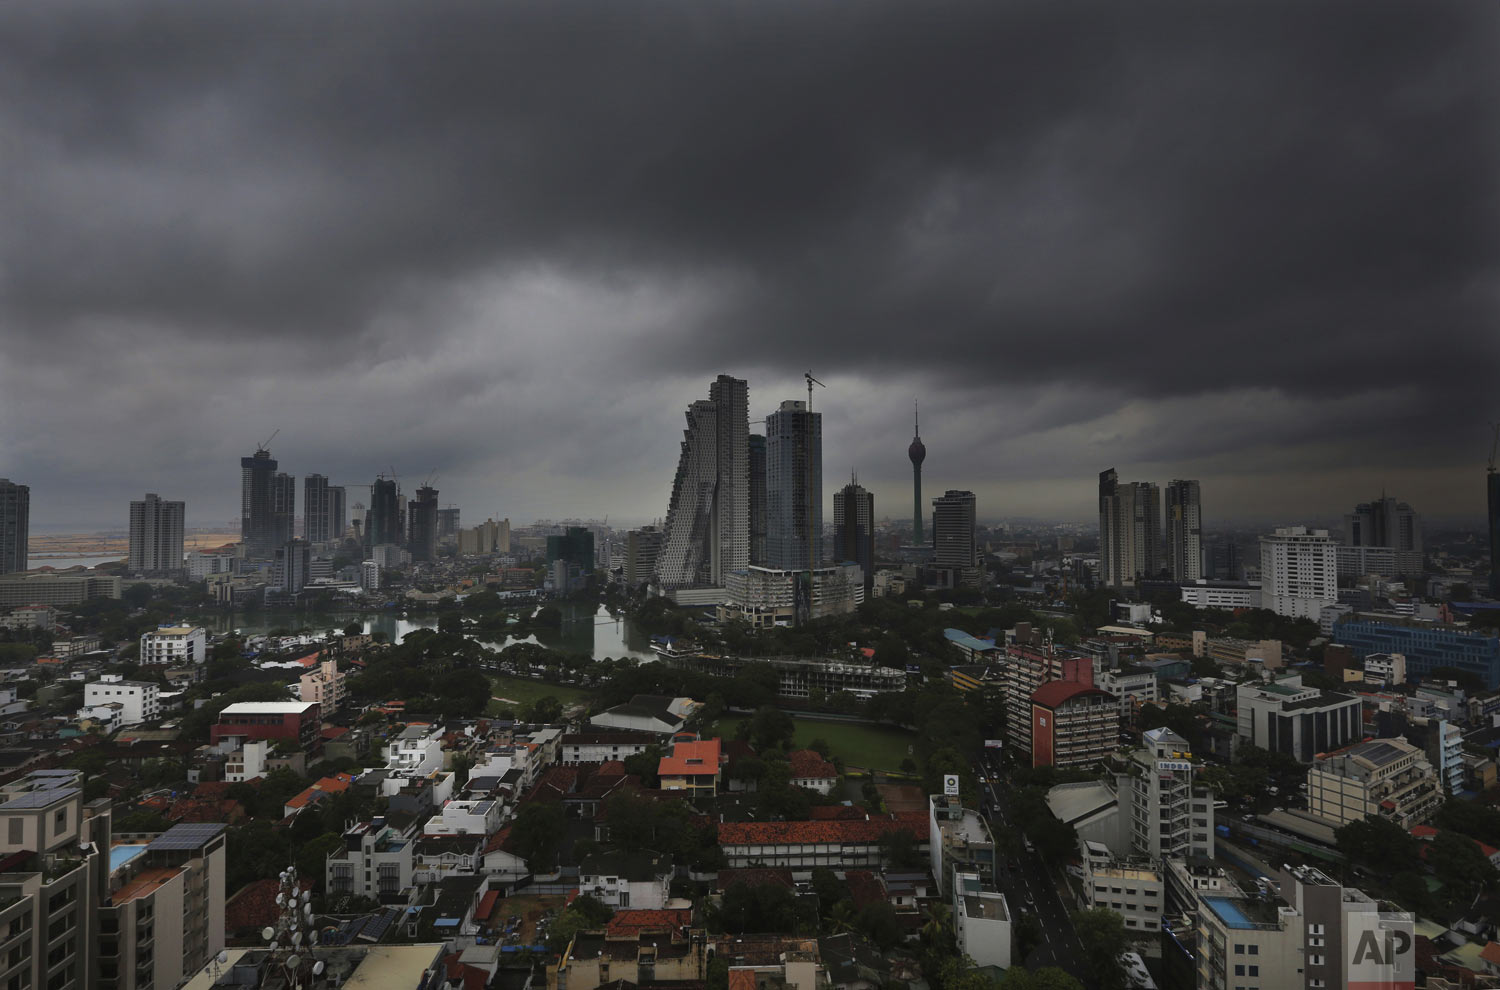 "Dark clouds from a thunderstorm pass over Colombo, Sri Lanka, Tuesday, April 30, 2019. On Friday, the India Meteorological Department said the ""extremely severe"" cyclone Fani in the Bay of Bengal hit the coastal state of Odisha around 8 a.m., with weather impacted across the Asian subcontinent. (AP Photo/Manish Swarup)"